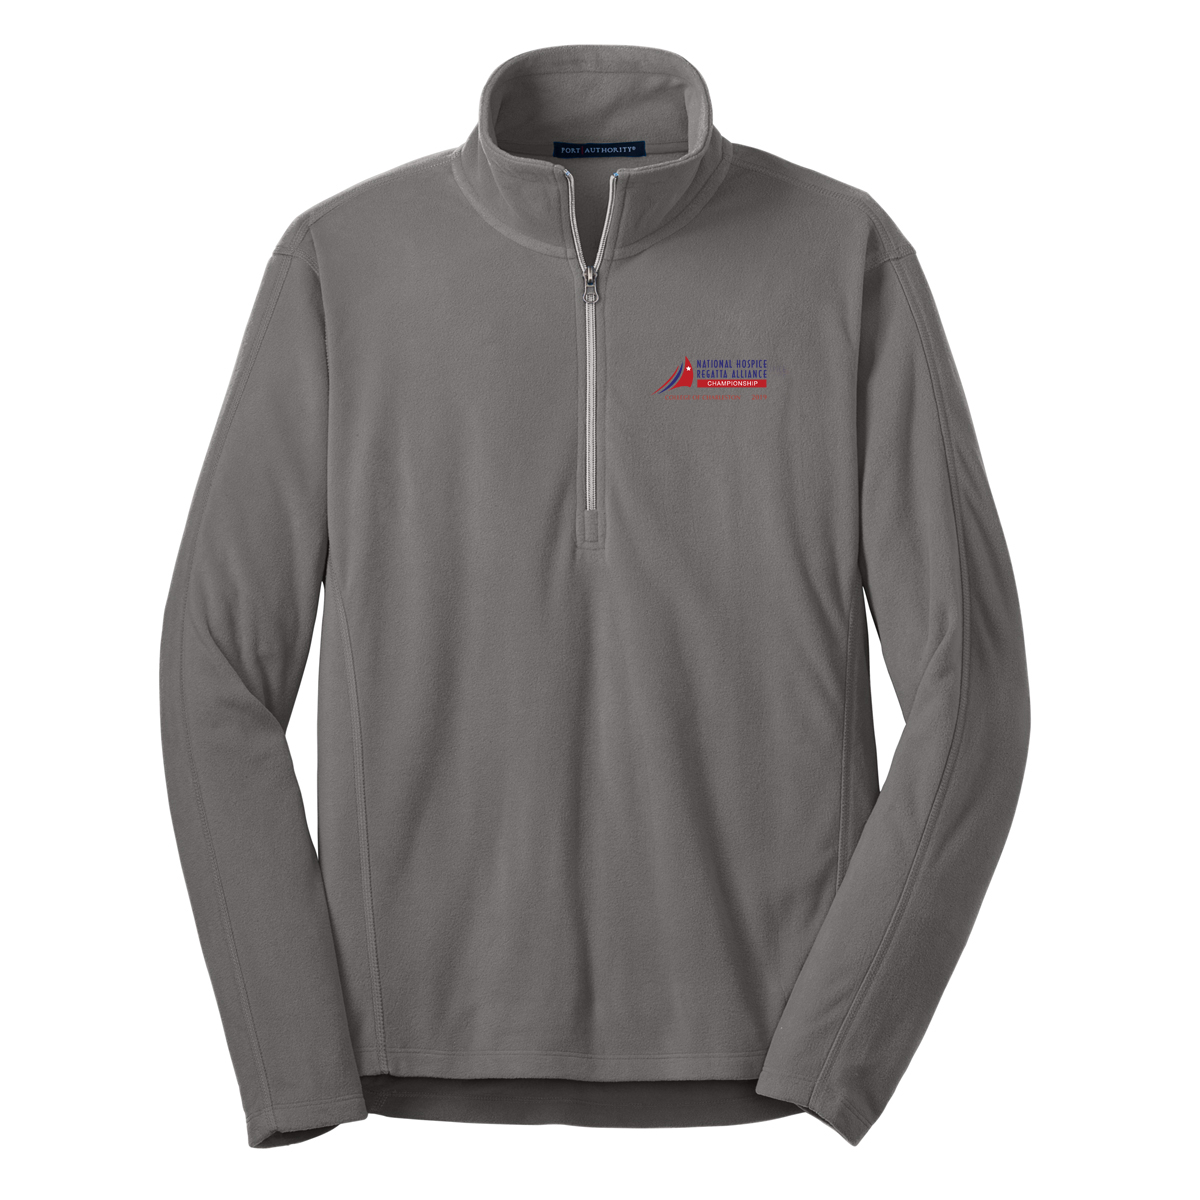 Hospice Regatta Championship 2019 - Men's Fleece Pullover